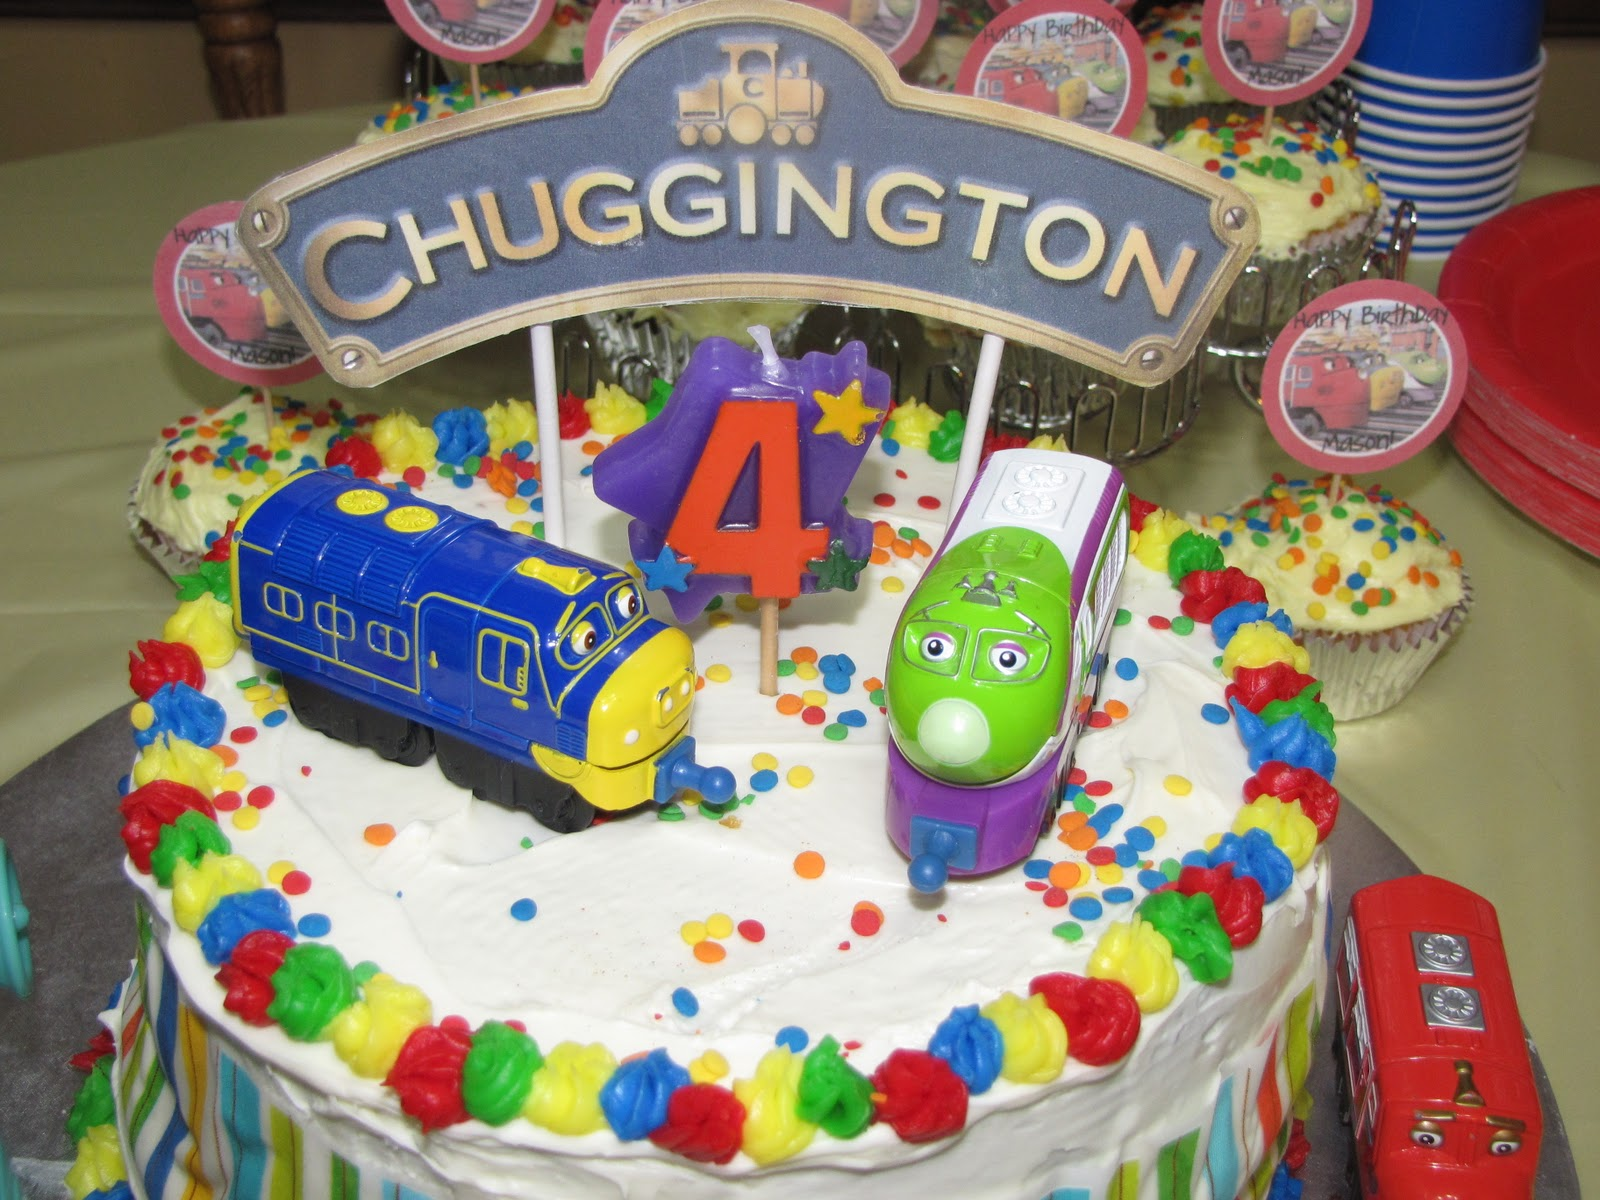 Chuggington Birthday Supplies 1st Birthday Party Pinterest